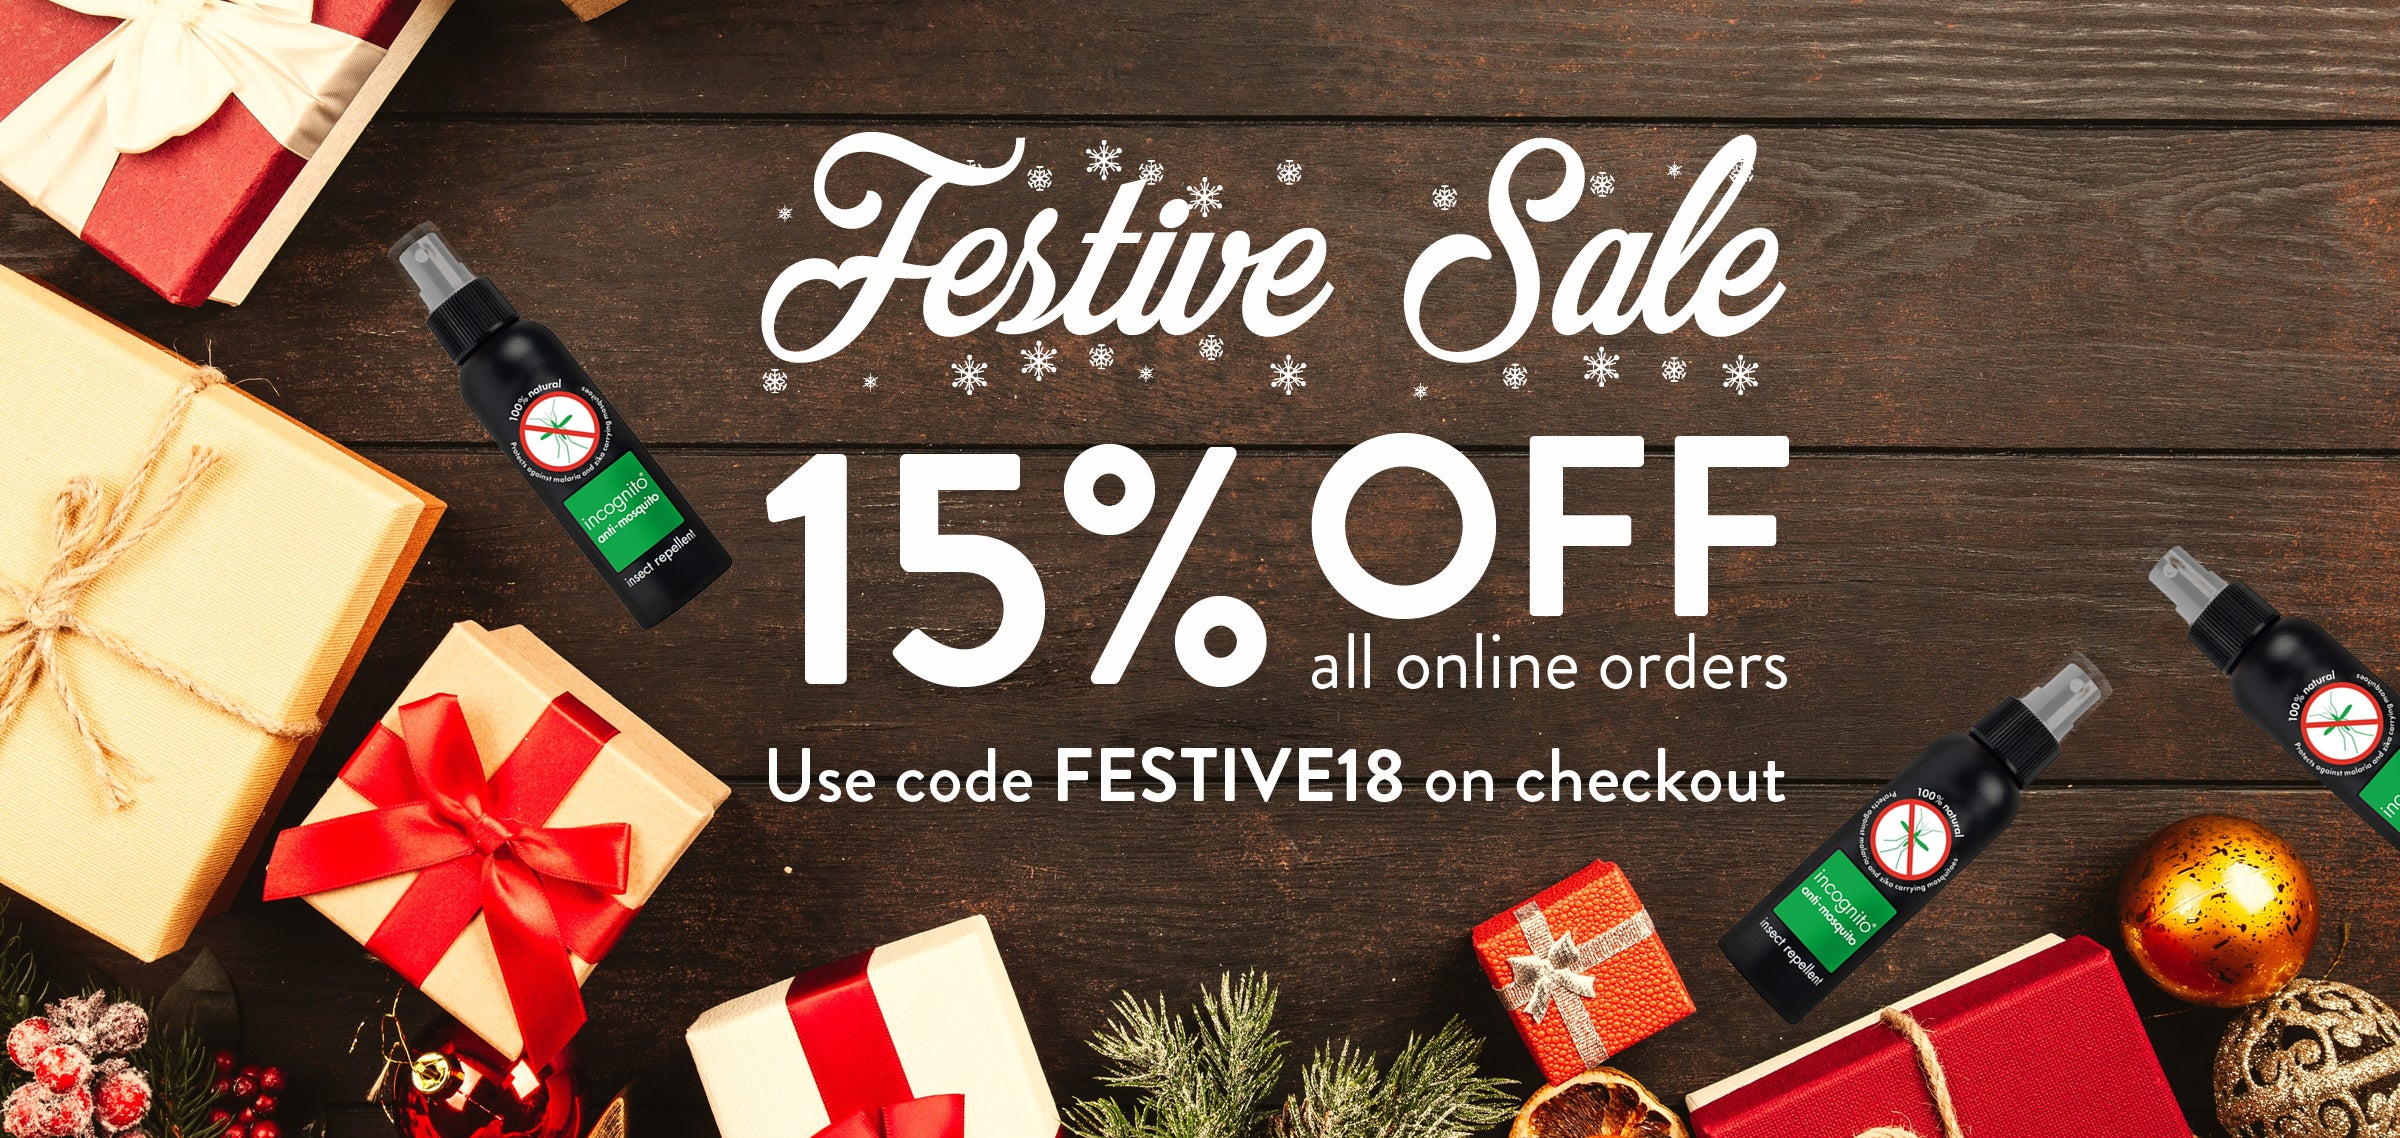 Use code FESTIVE18 on checkout